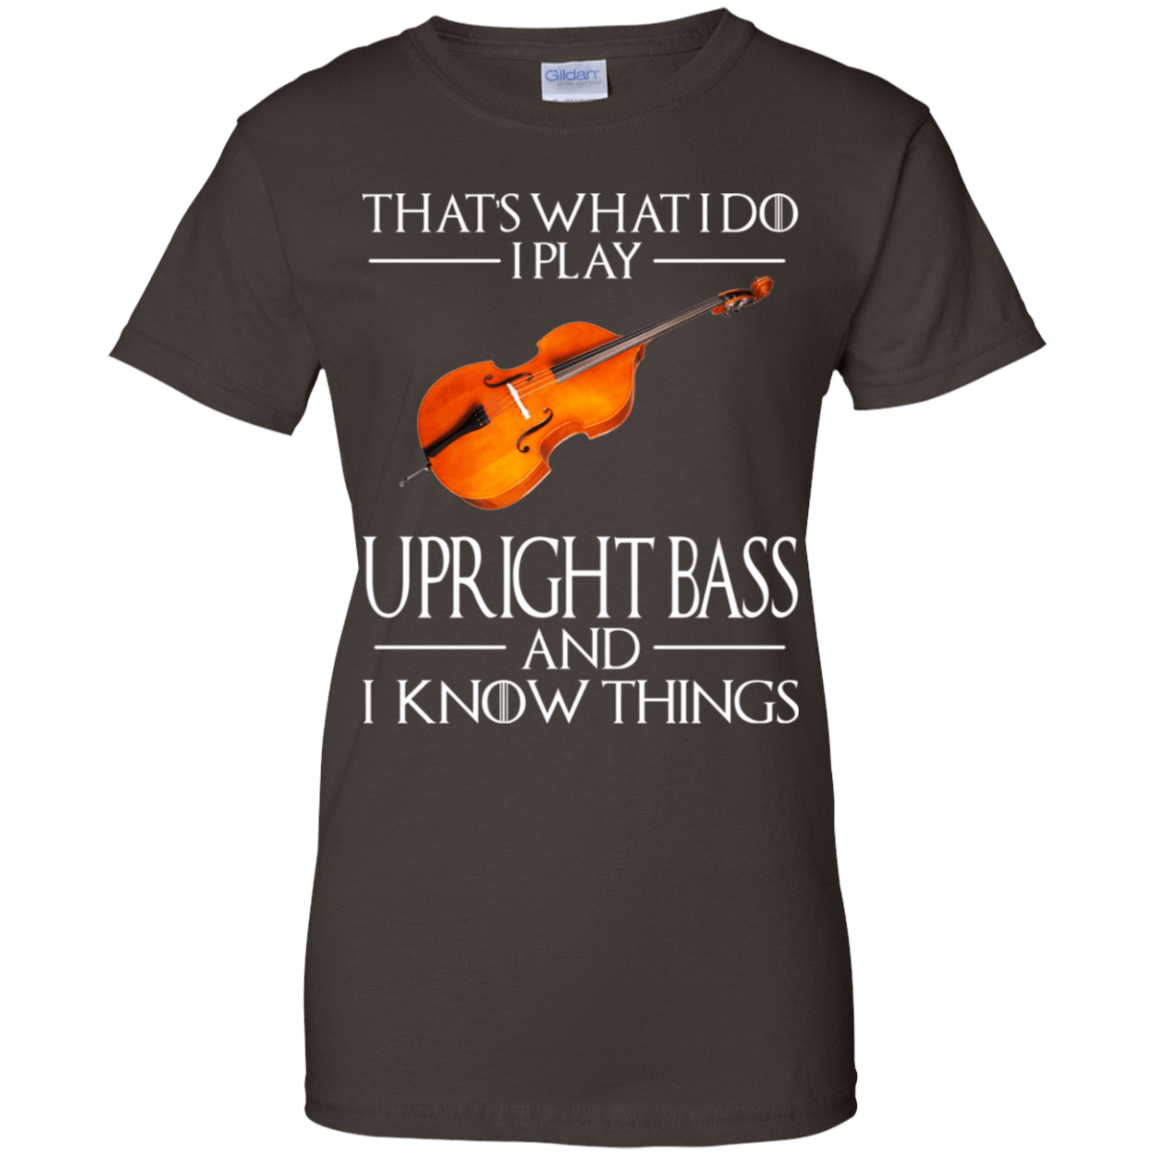 That's What I Do I Play Upright Bass And I Know Things 939-9251-73427950-44702 - Tee Ript